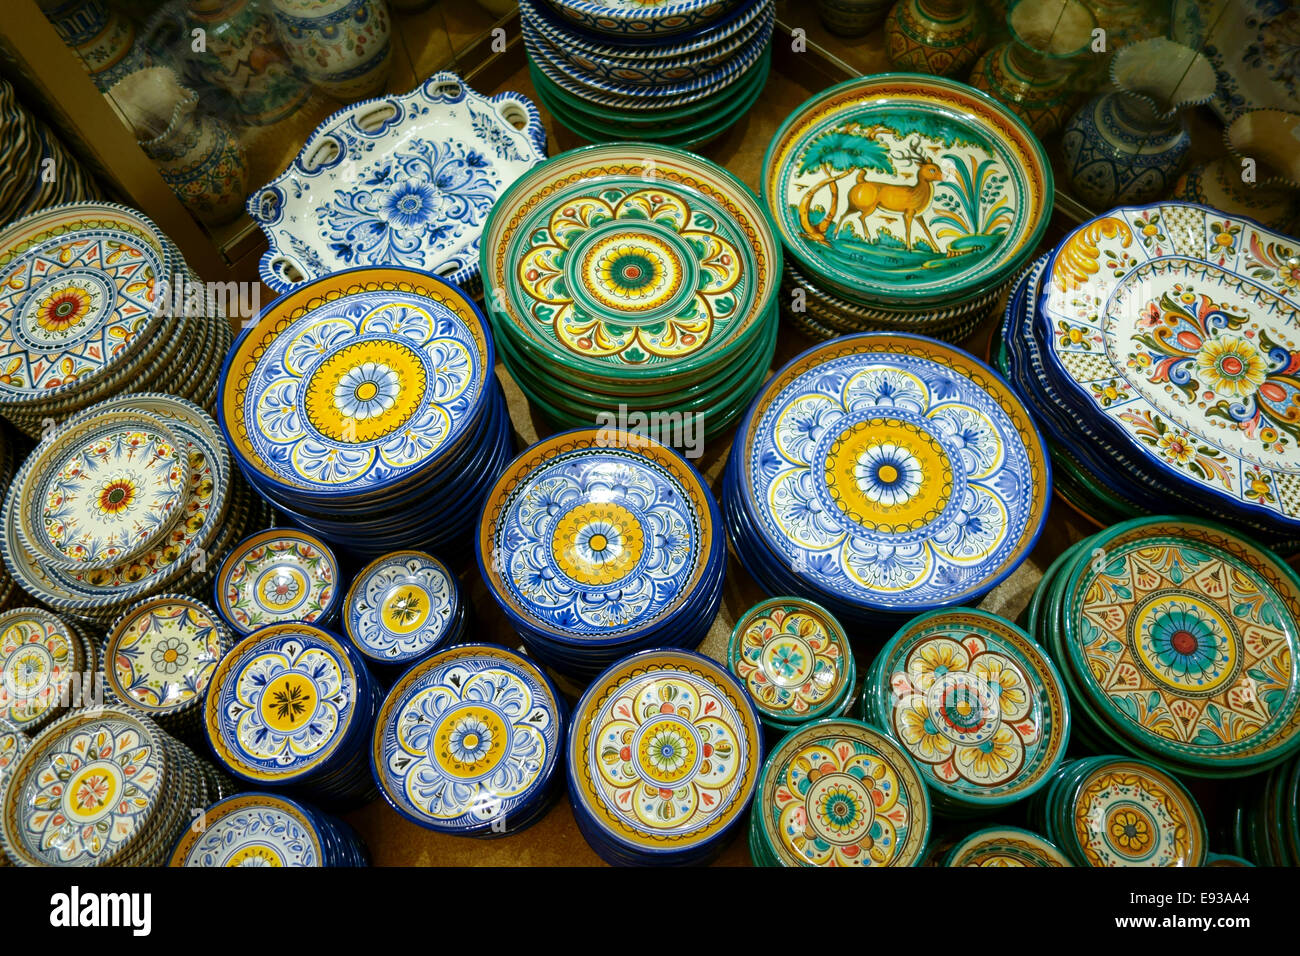 Spanish pottery and ceramic plates on display in shop store Mijas Andalusia Southern Spain. & Spanish pottery and ceramic plates on display in shop store Stock ...